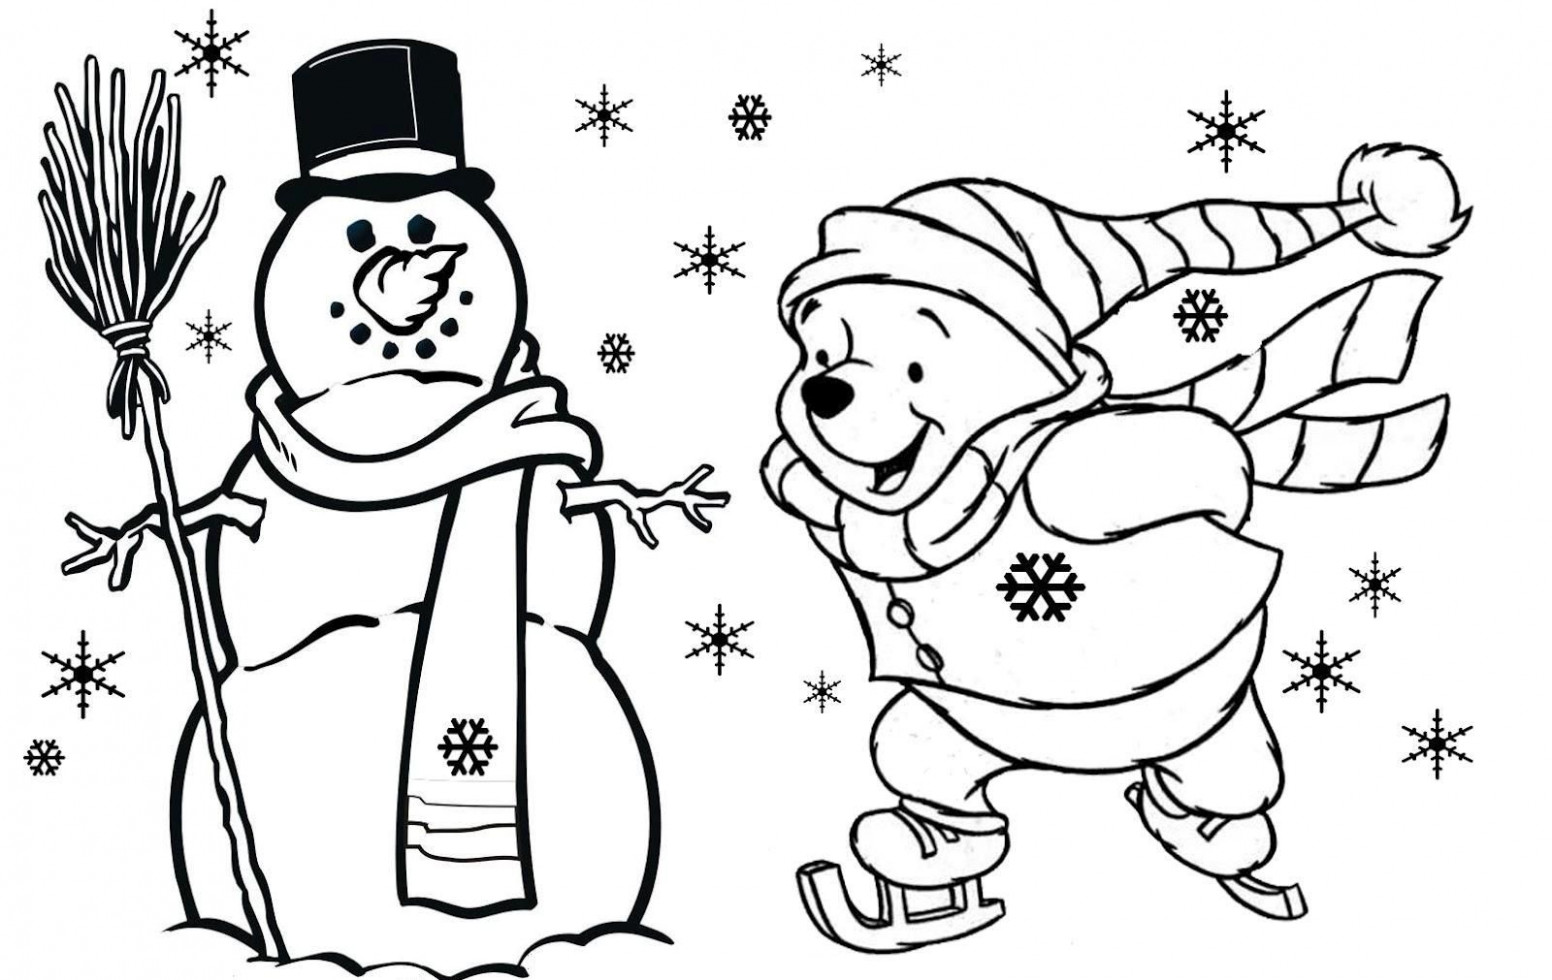 Winnie The Pooh Free Christmas Coloring Pages For Kids   Christmas ...